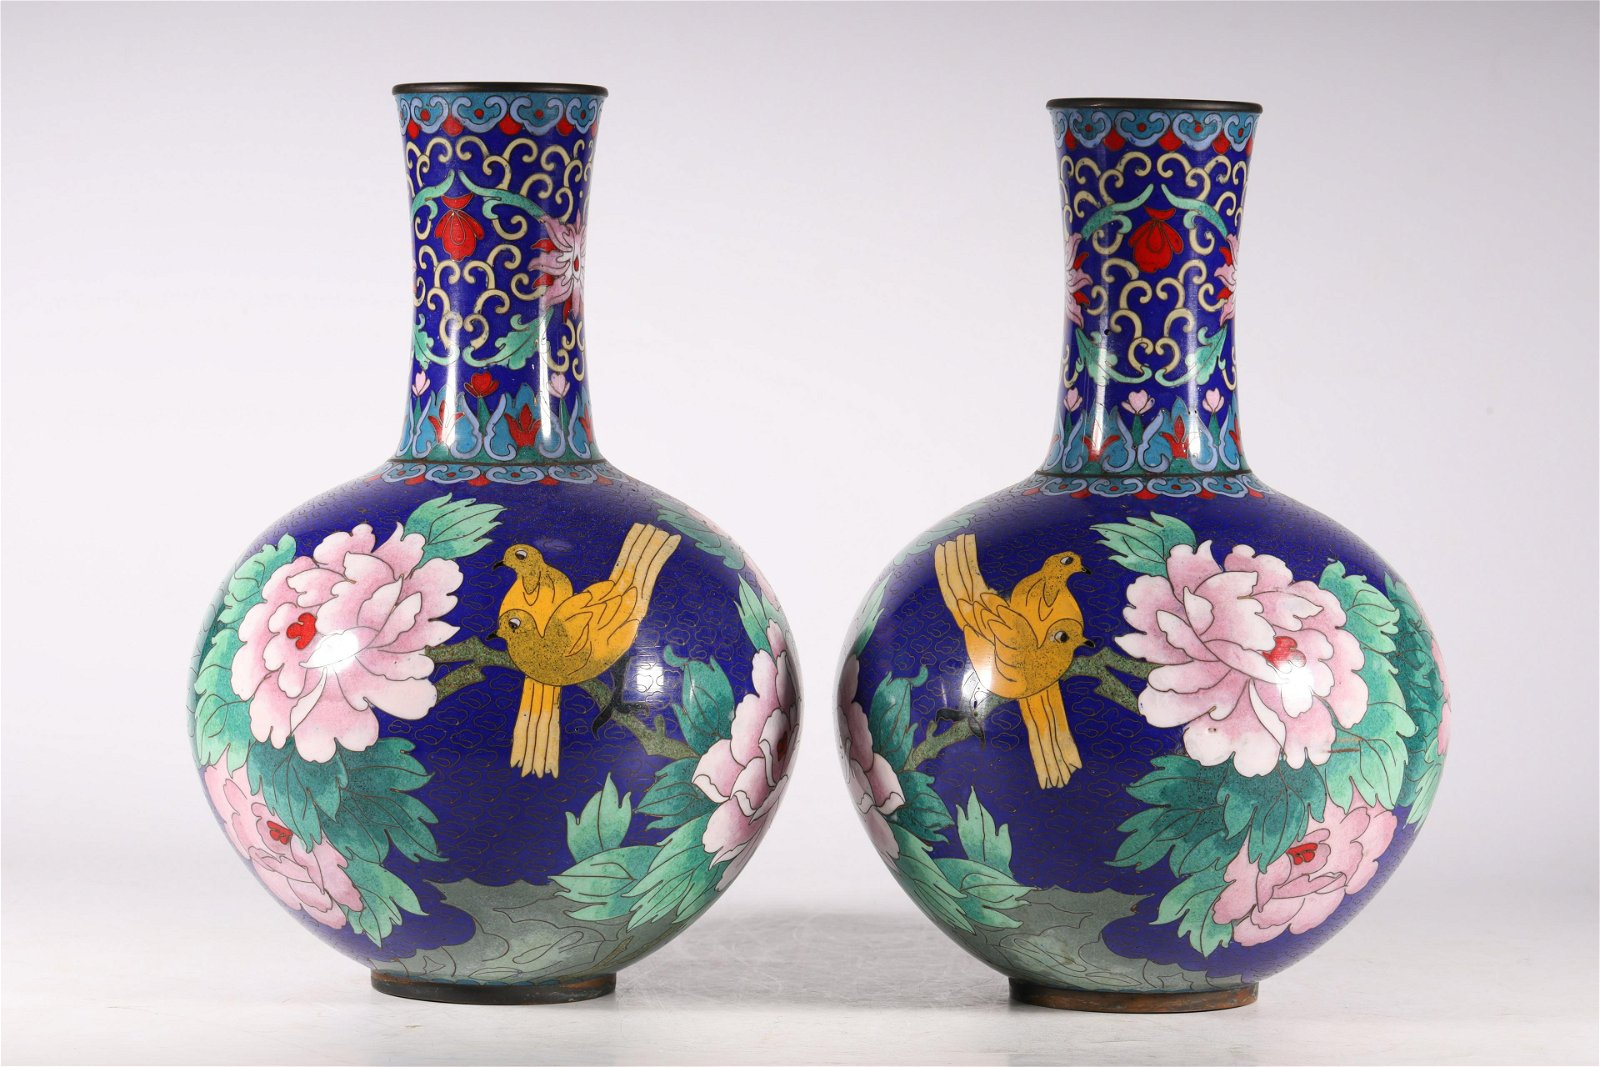 An Exceptional and Rare Pair of Cloisonne 'Flower and